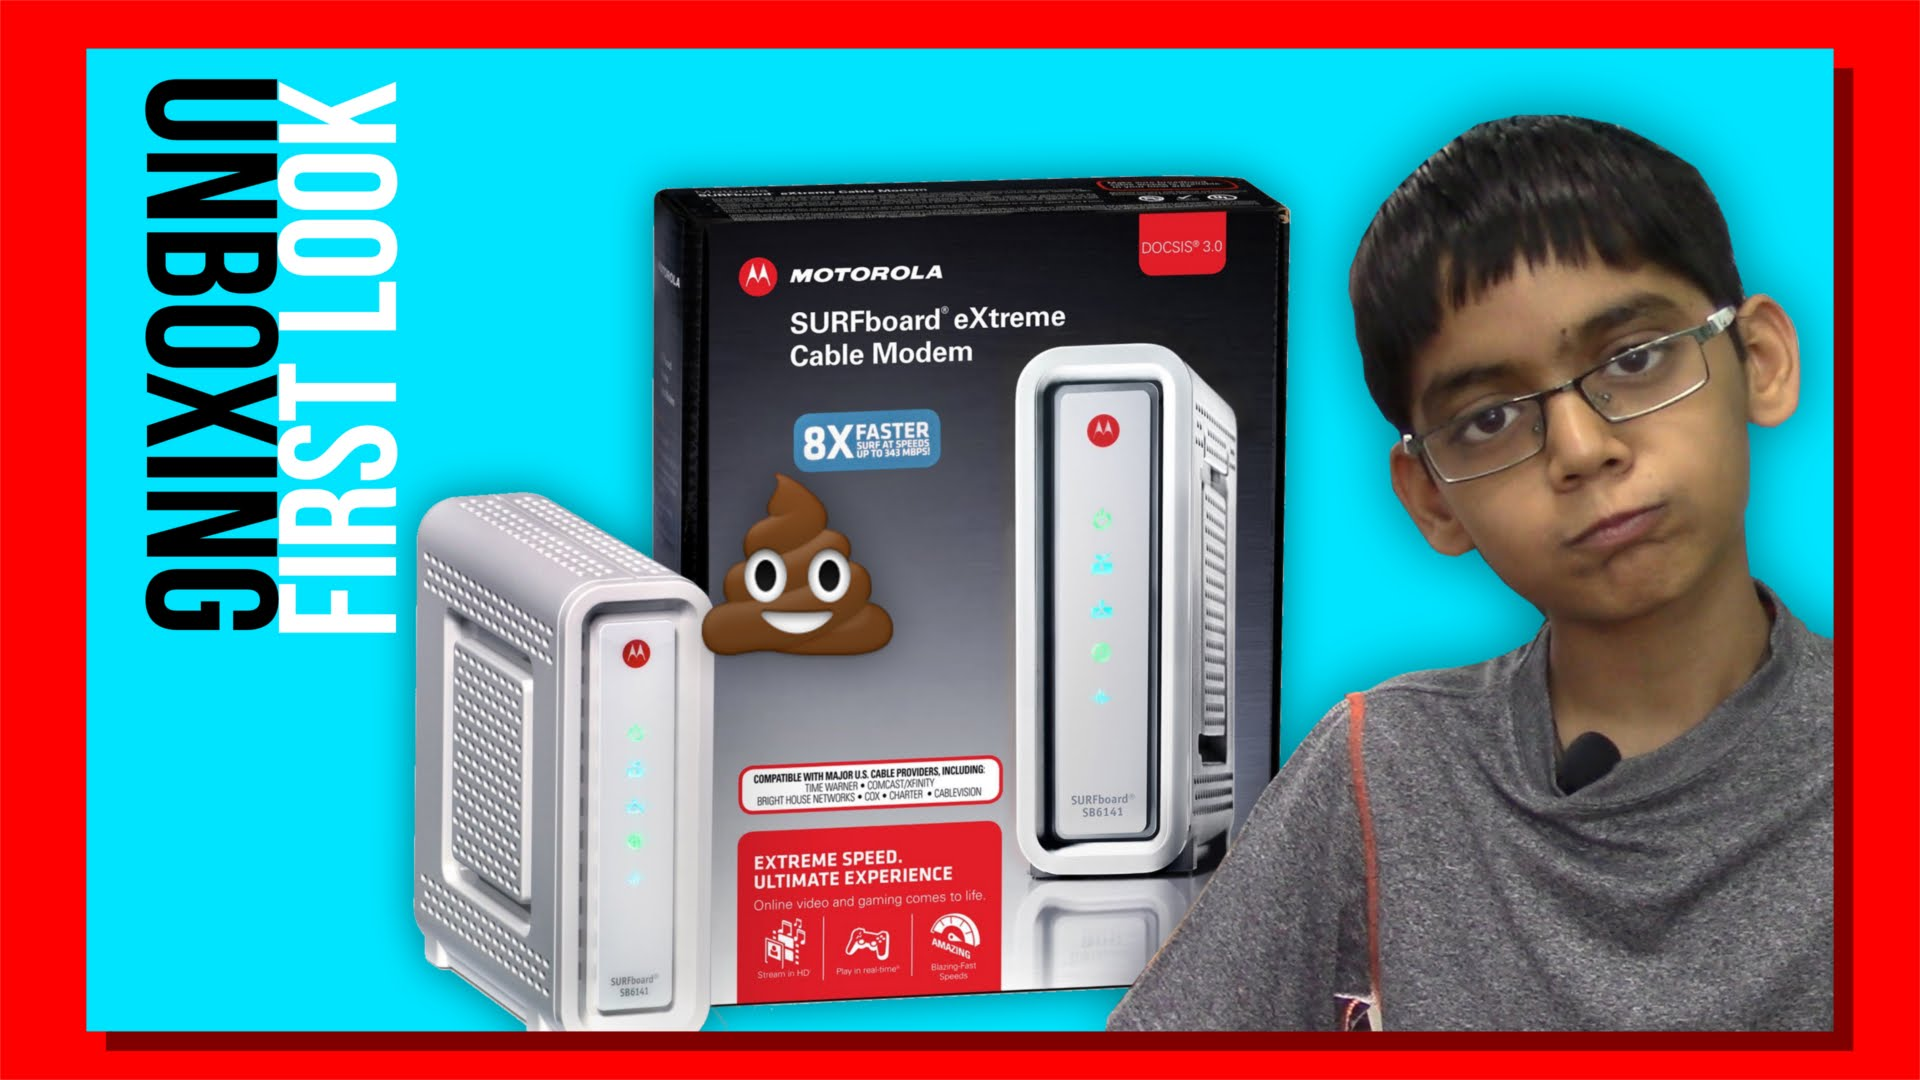 ARRIS / Motorola SurfBoard eXtreme SB6141 DOCSIS 3.0 Cable Modem – Unboxing and First Look